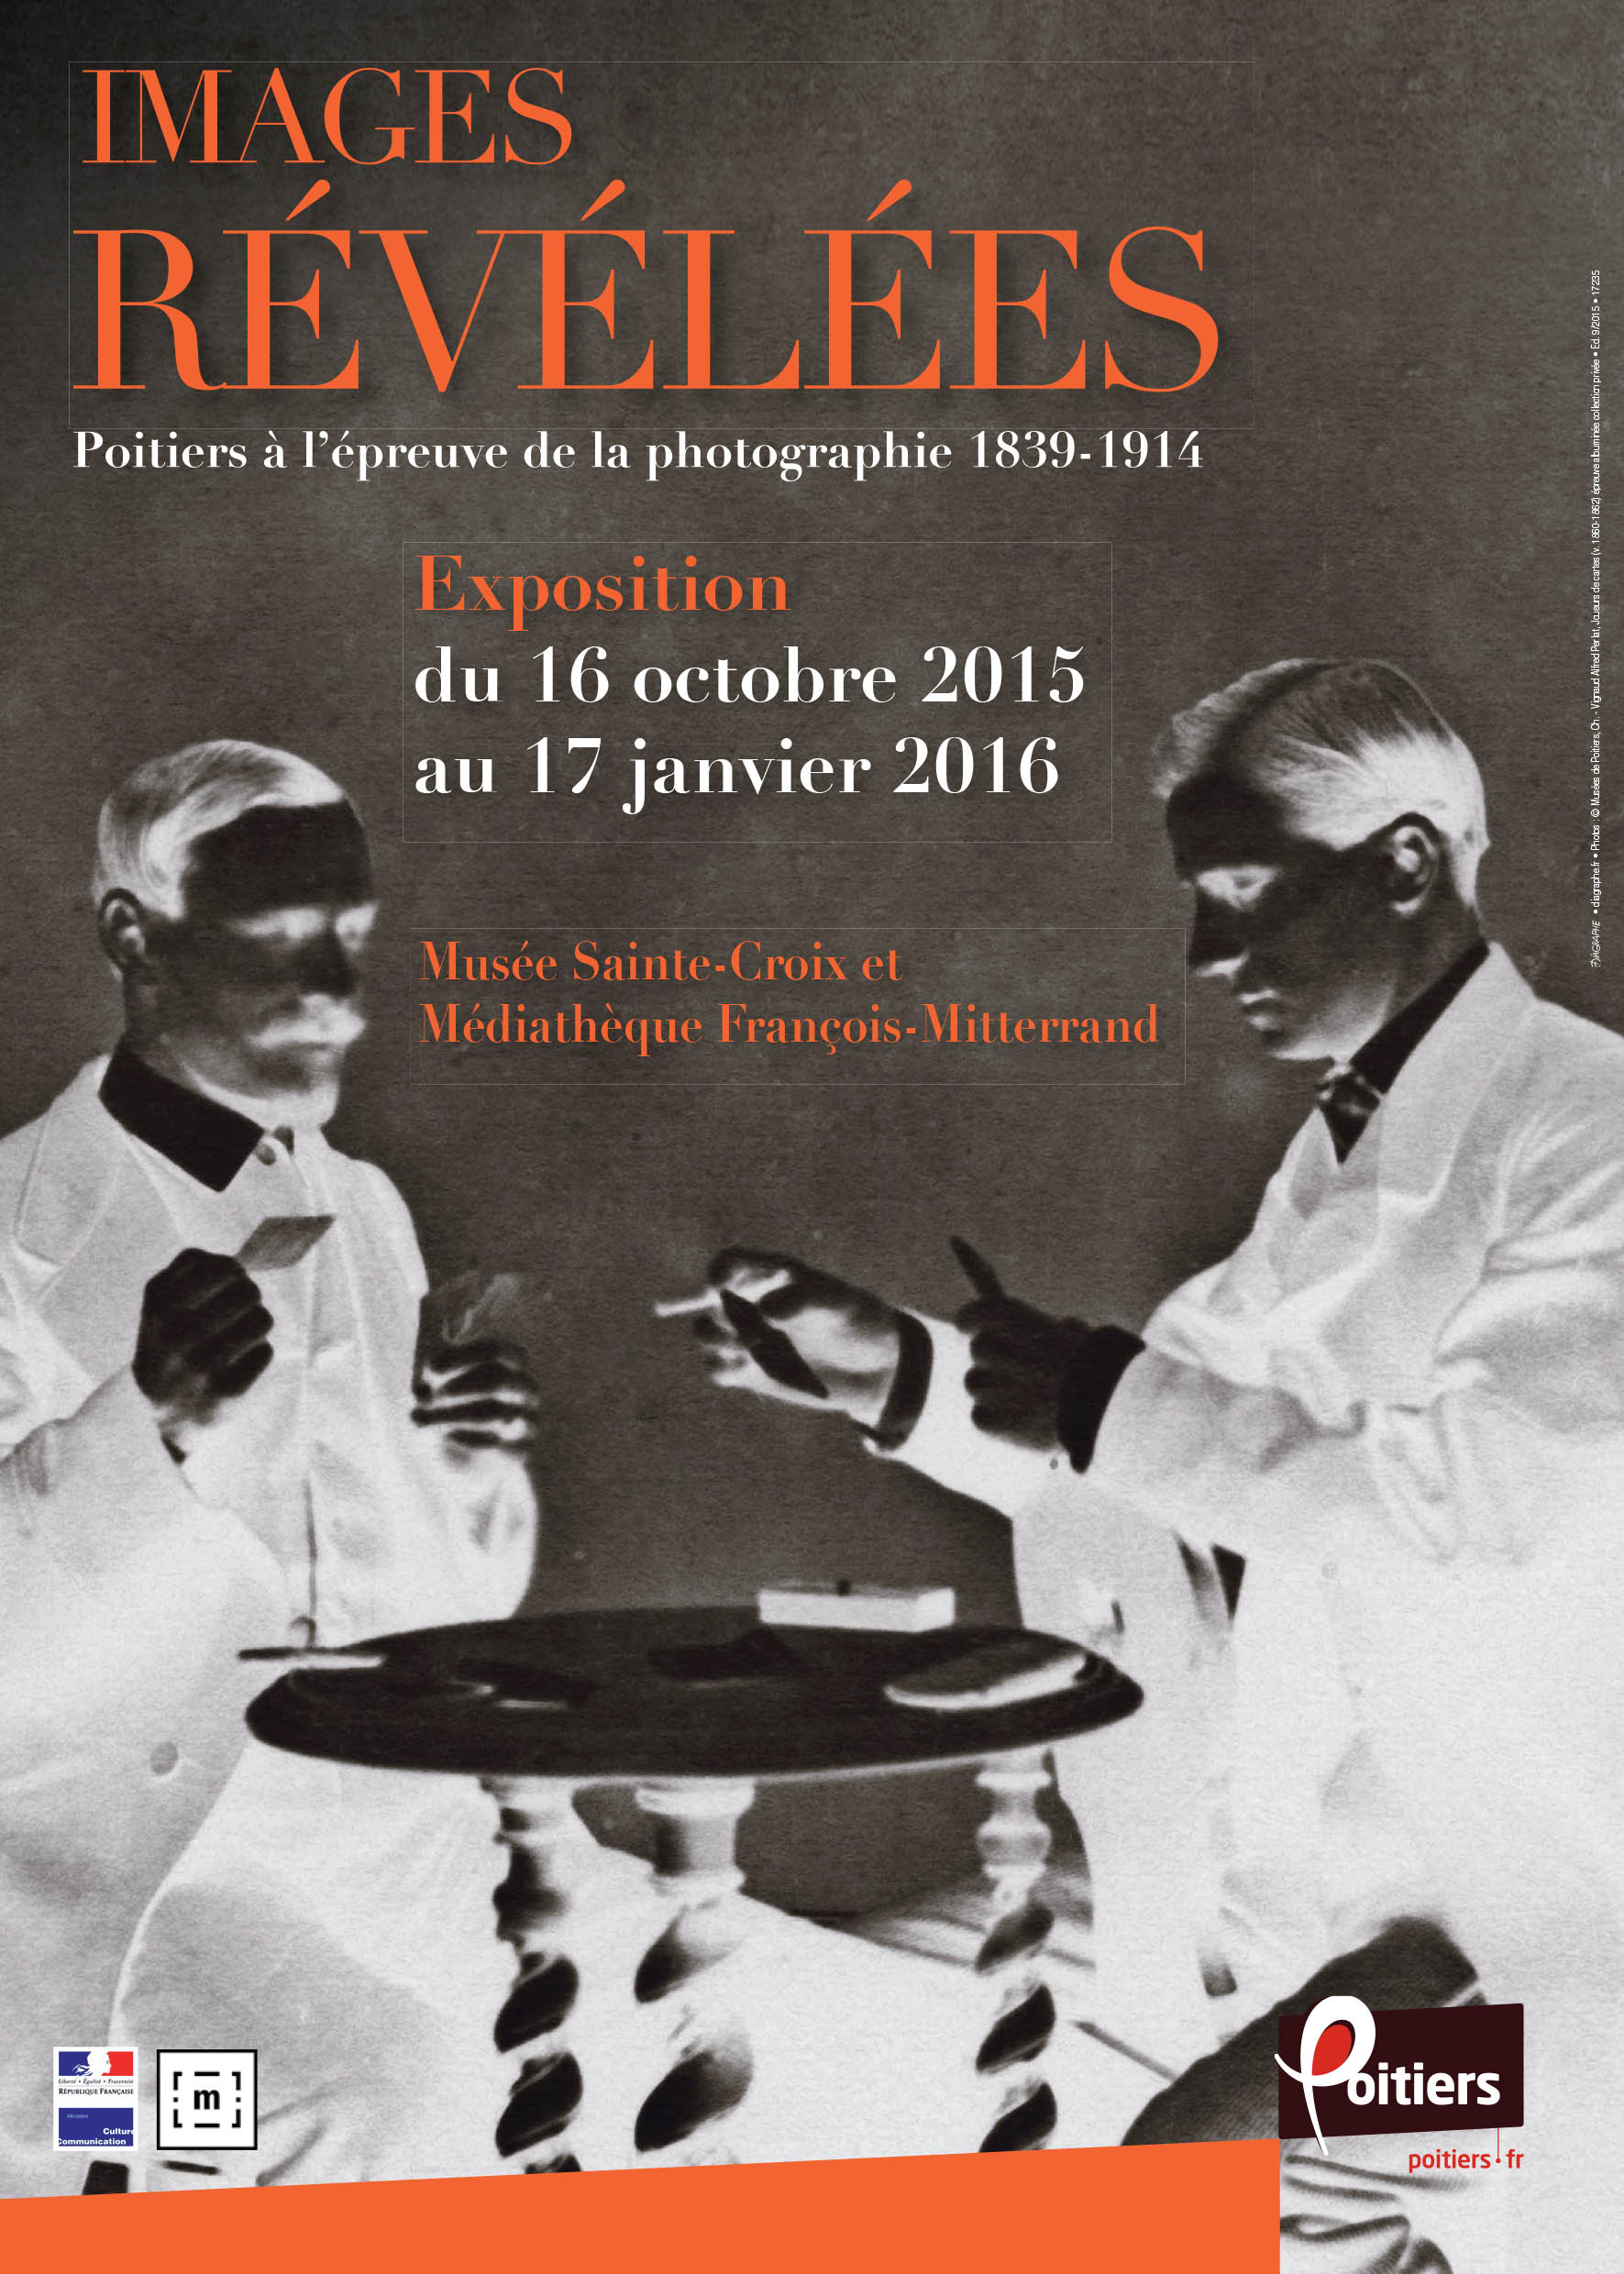 exposition_images_revelees